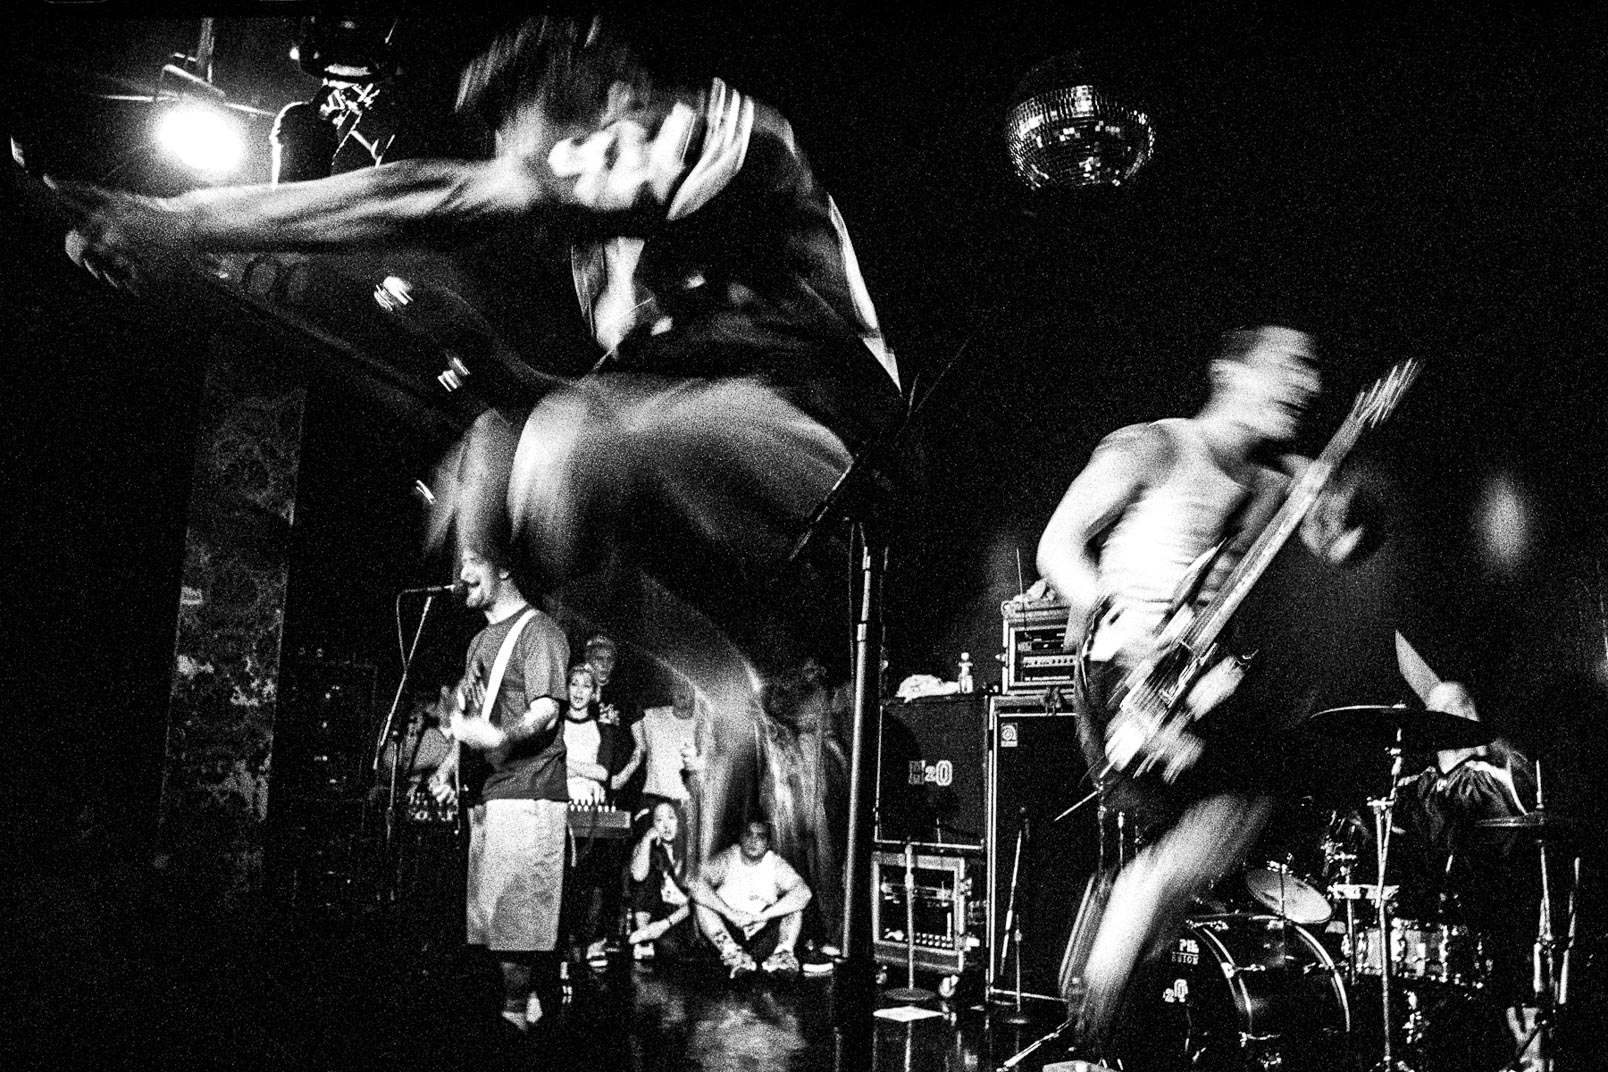 Black and white photograph of H2O live at Karma club Boston